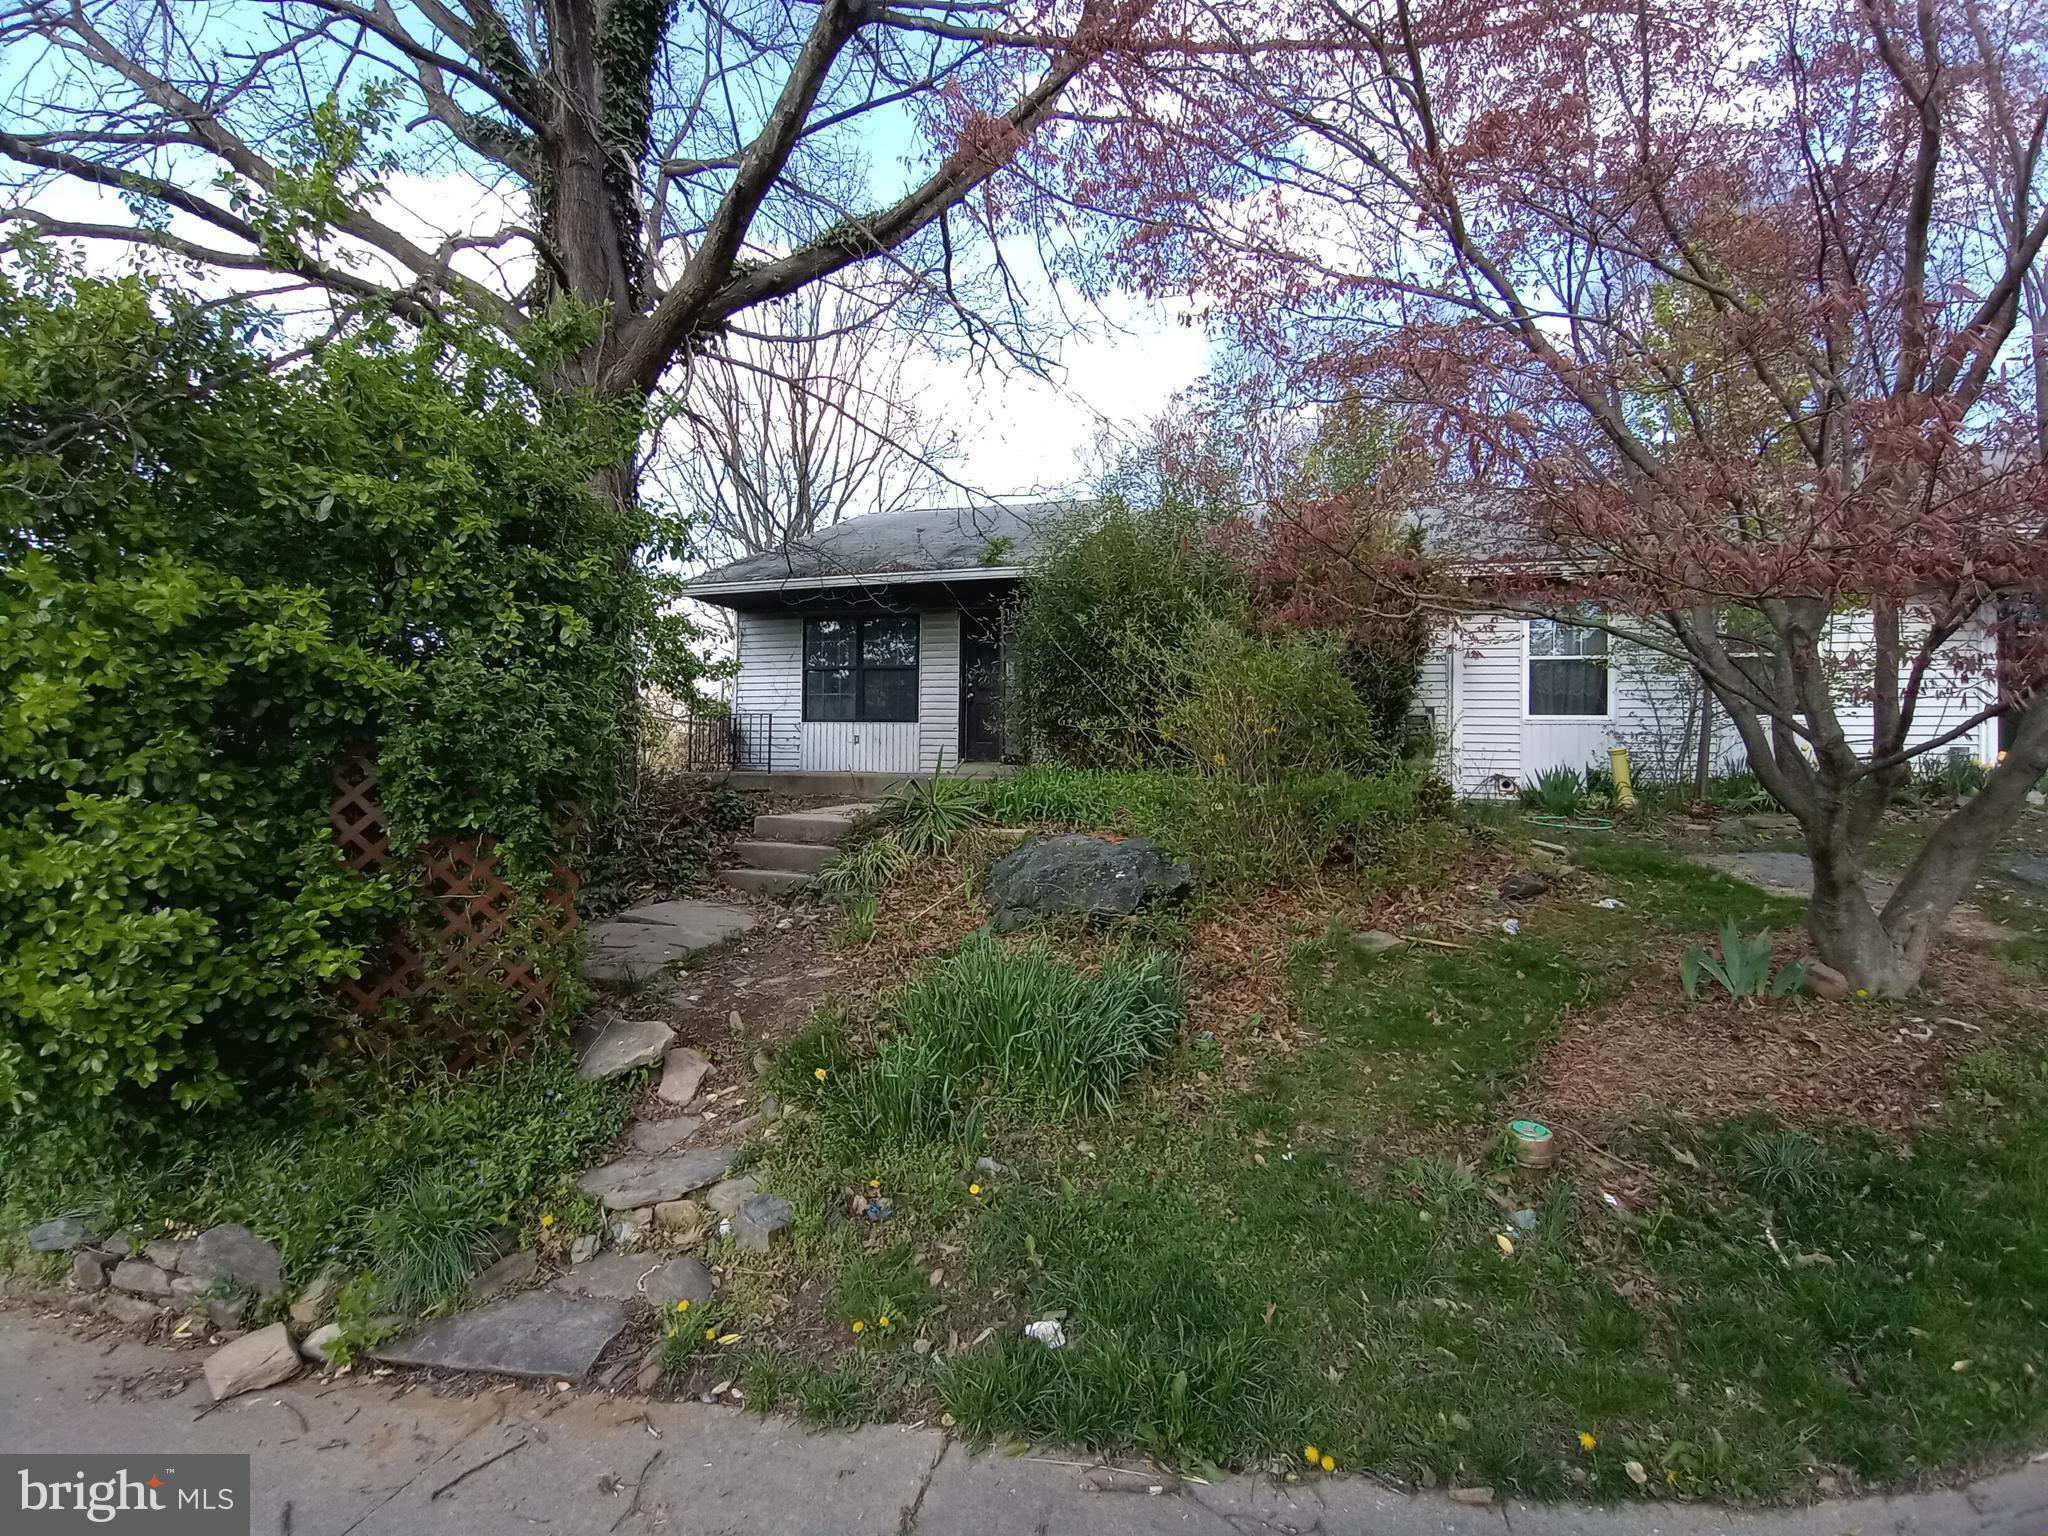 Sold AS-IS. House needs renovation. Buyer to verify all listing details. Buyer to pay all transfer a